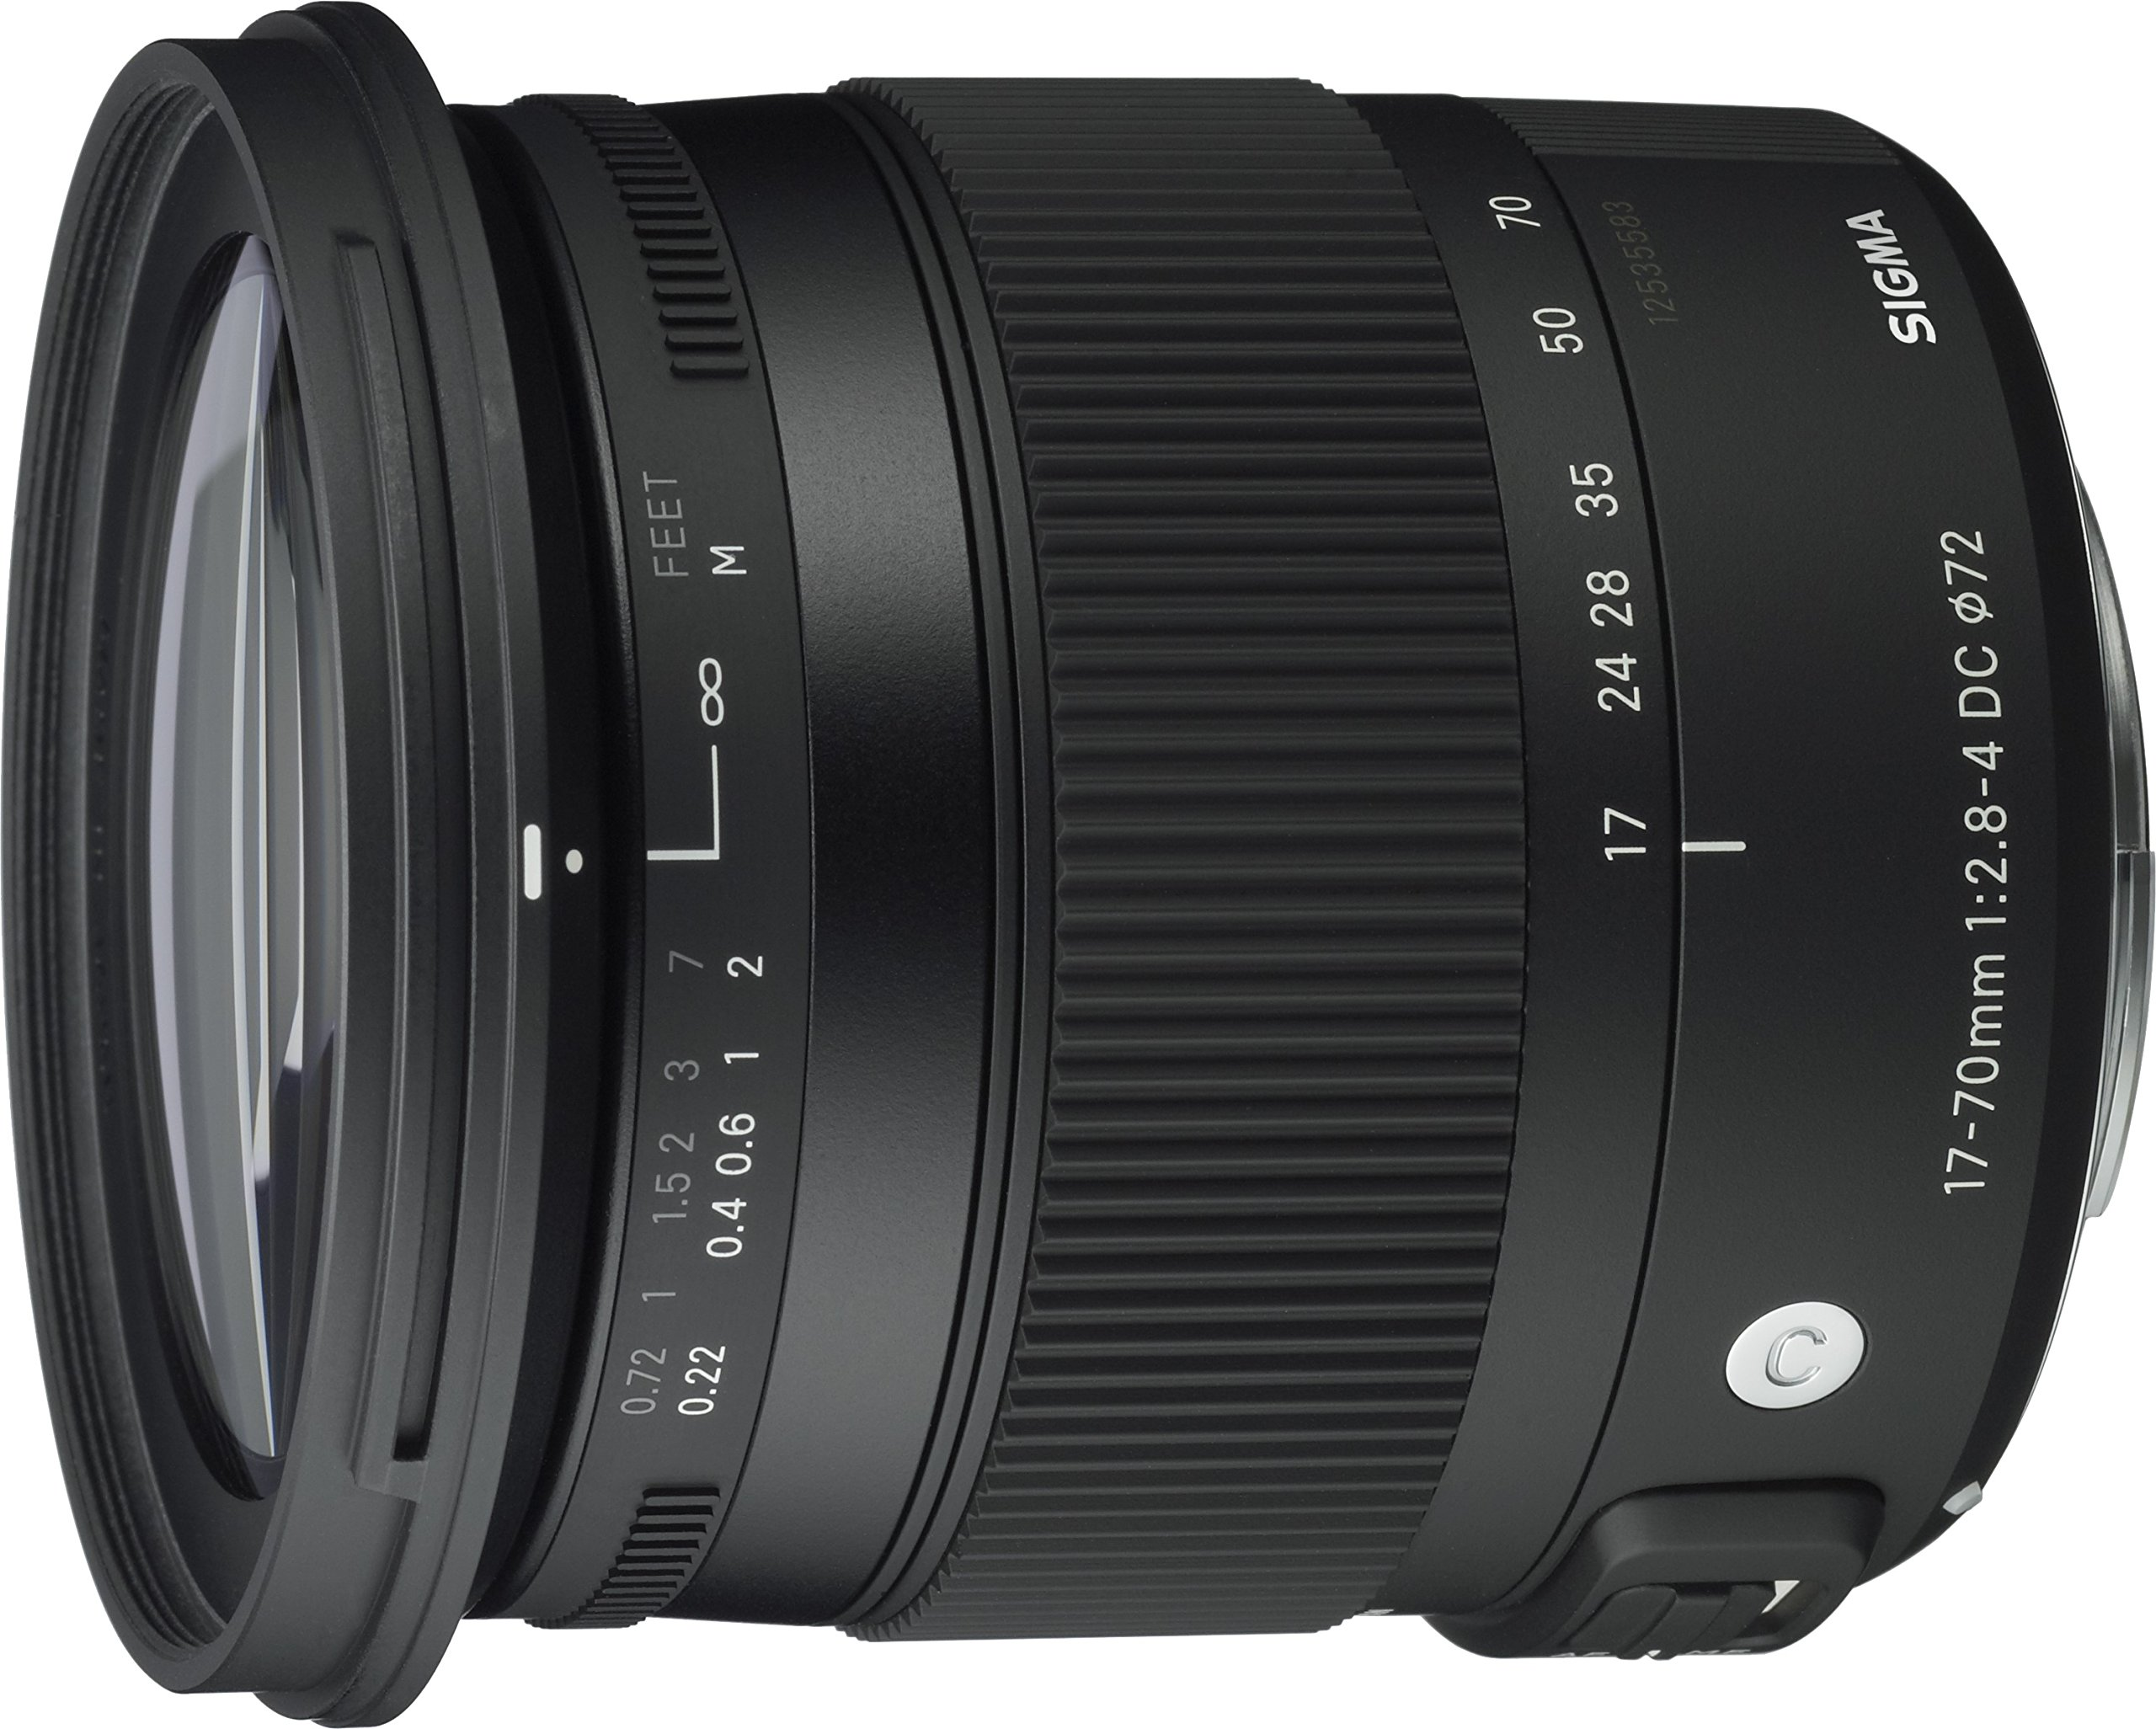 Sigma 17-70mm F2.8-4 Contemporary DC Macro OS HSM Lens for Nikon by Sigma